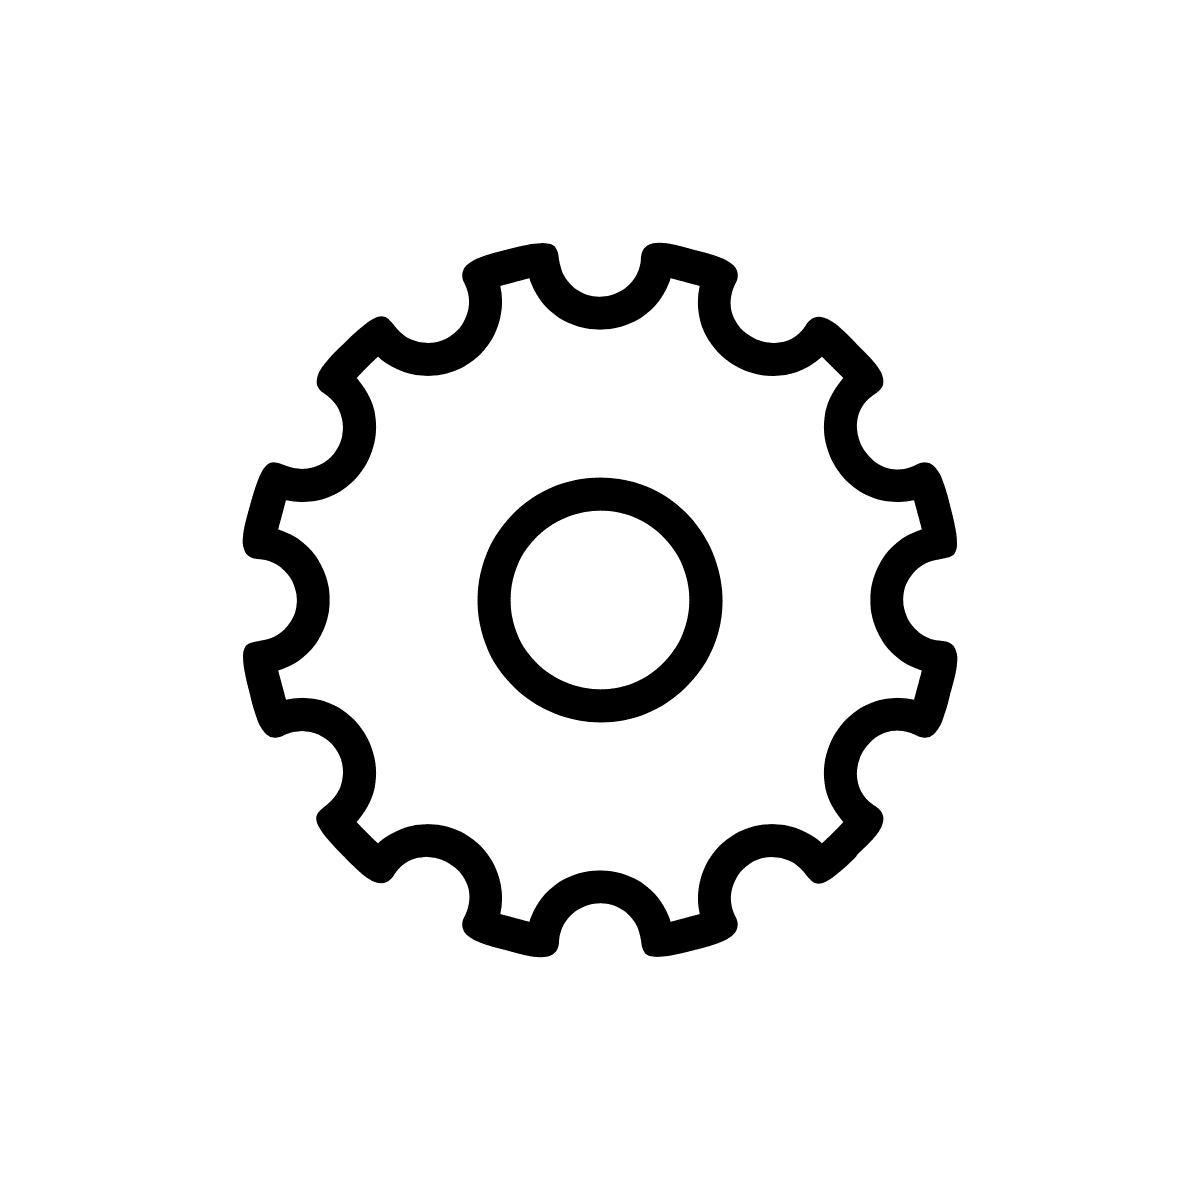 Black gear icon on transparent background.